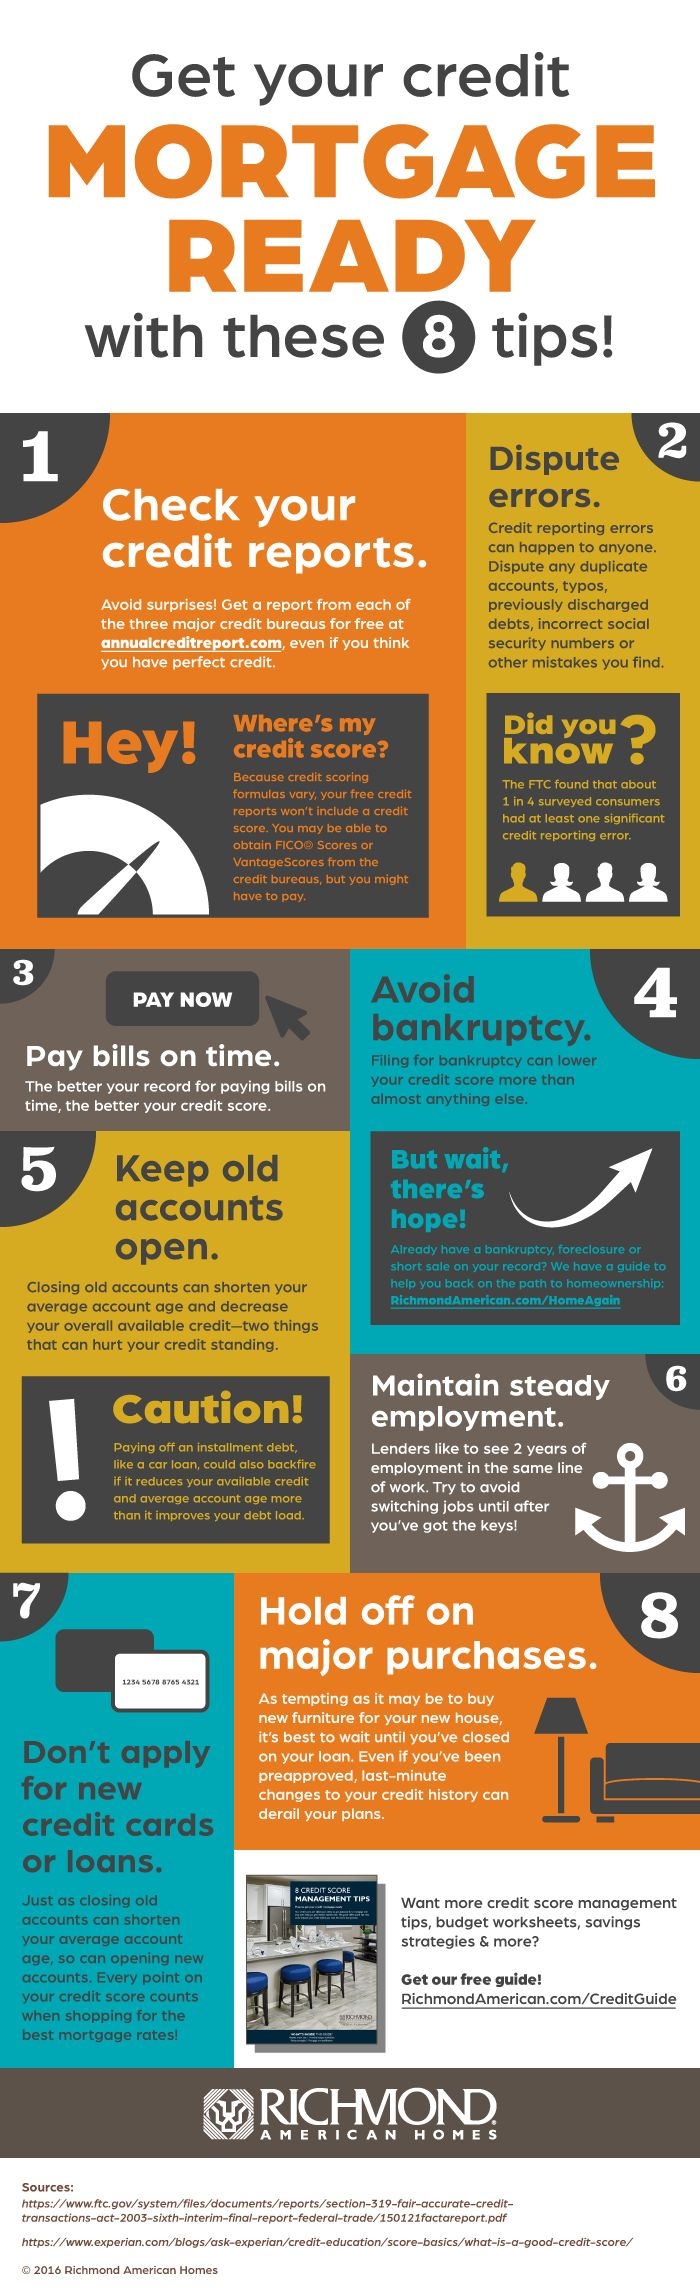 Get your credit mortgage ready with these 8 tips! | #infographic by Richmond American Homes